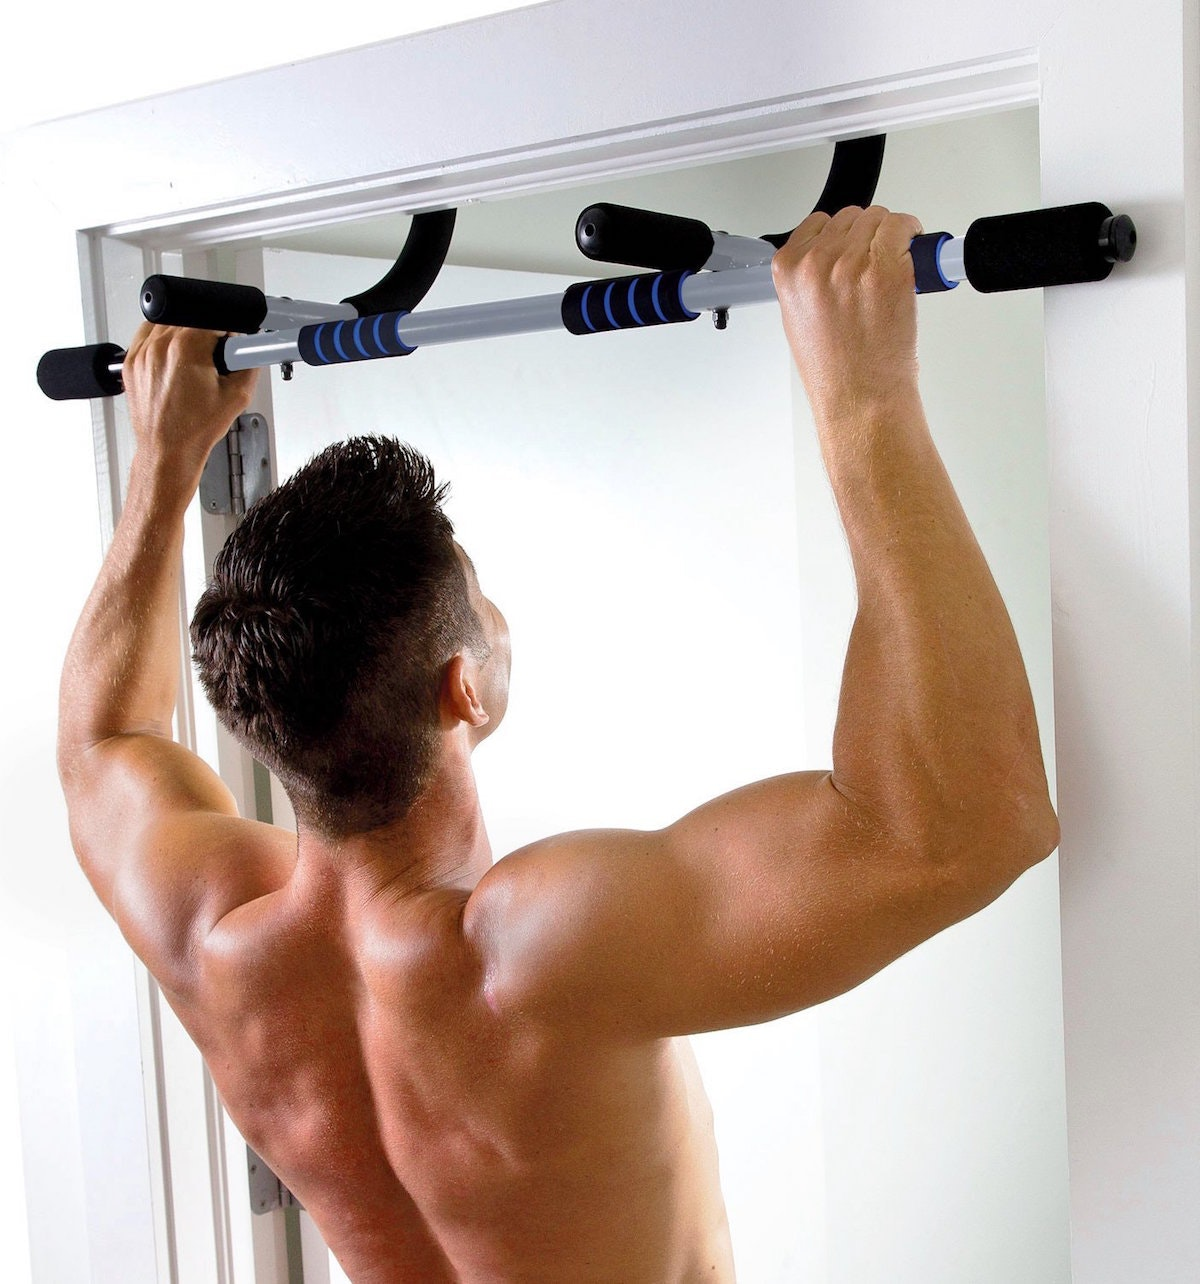 This workout bar that'll get you ripped